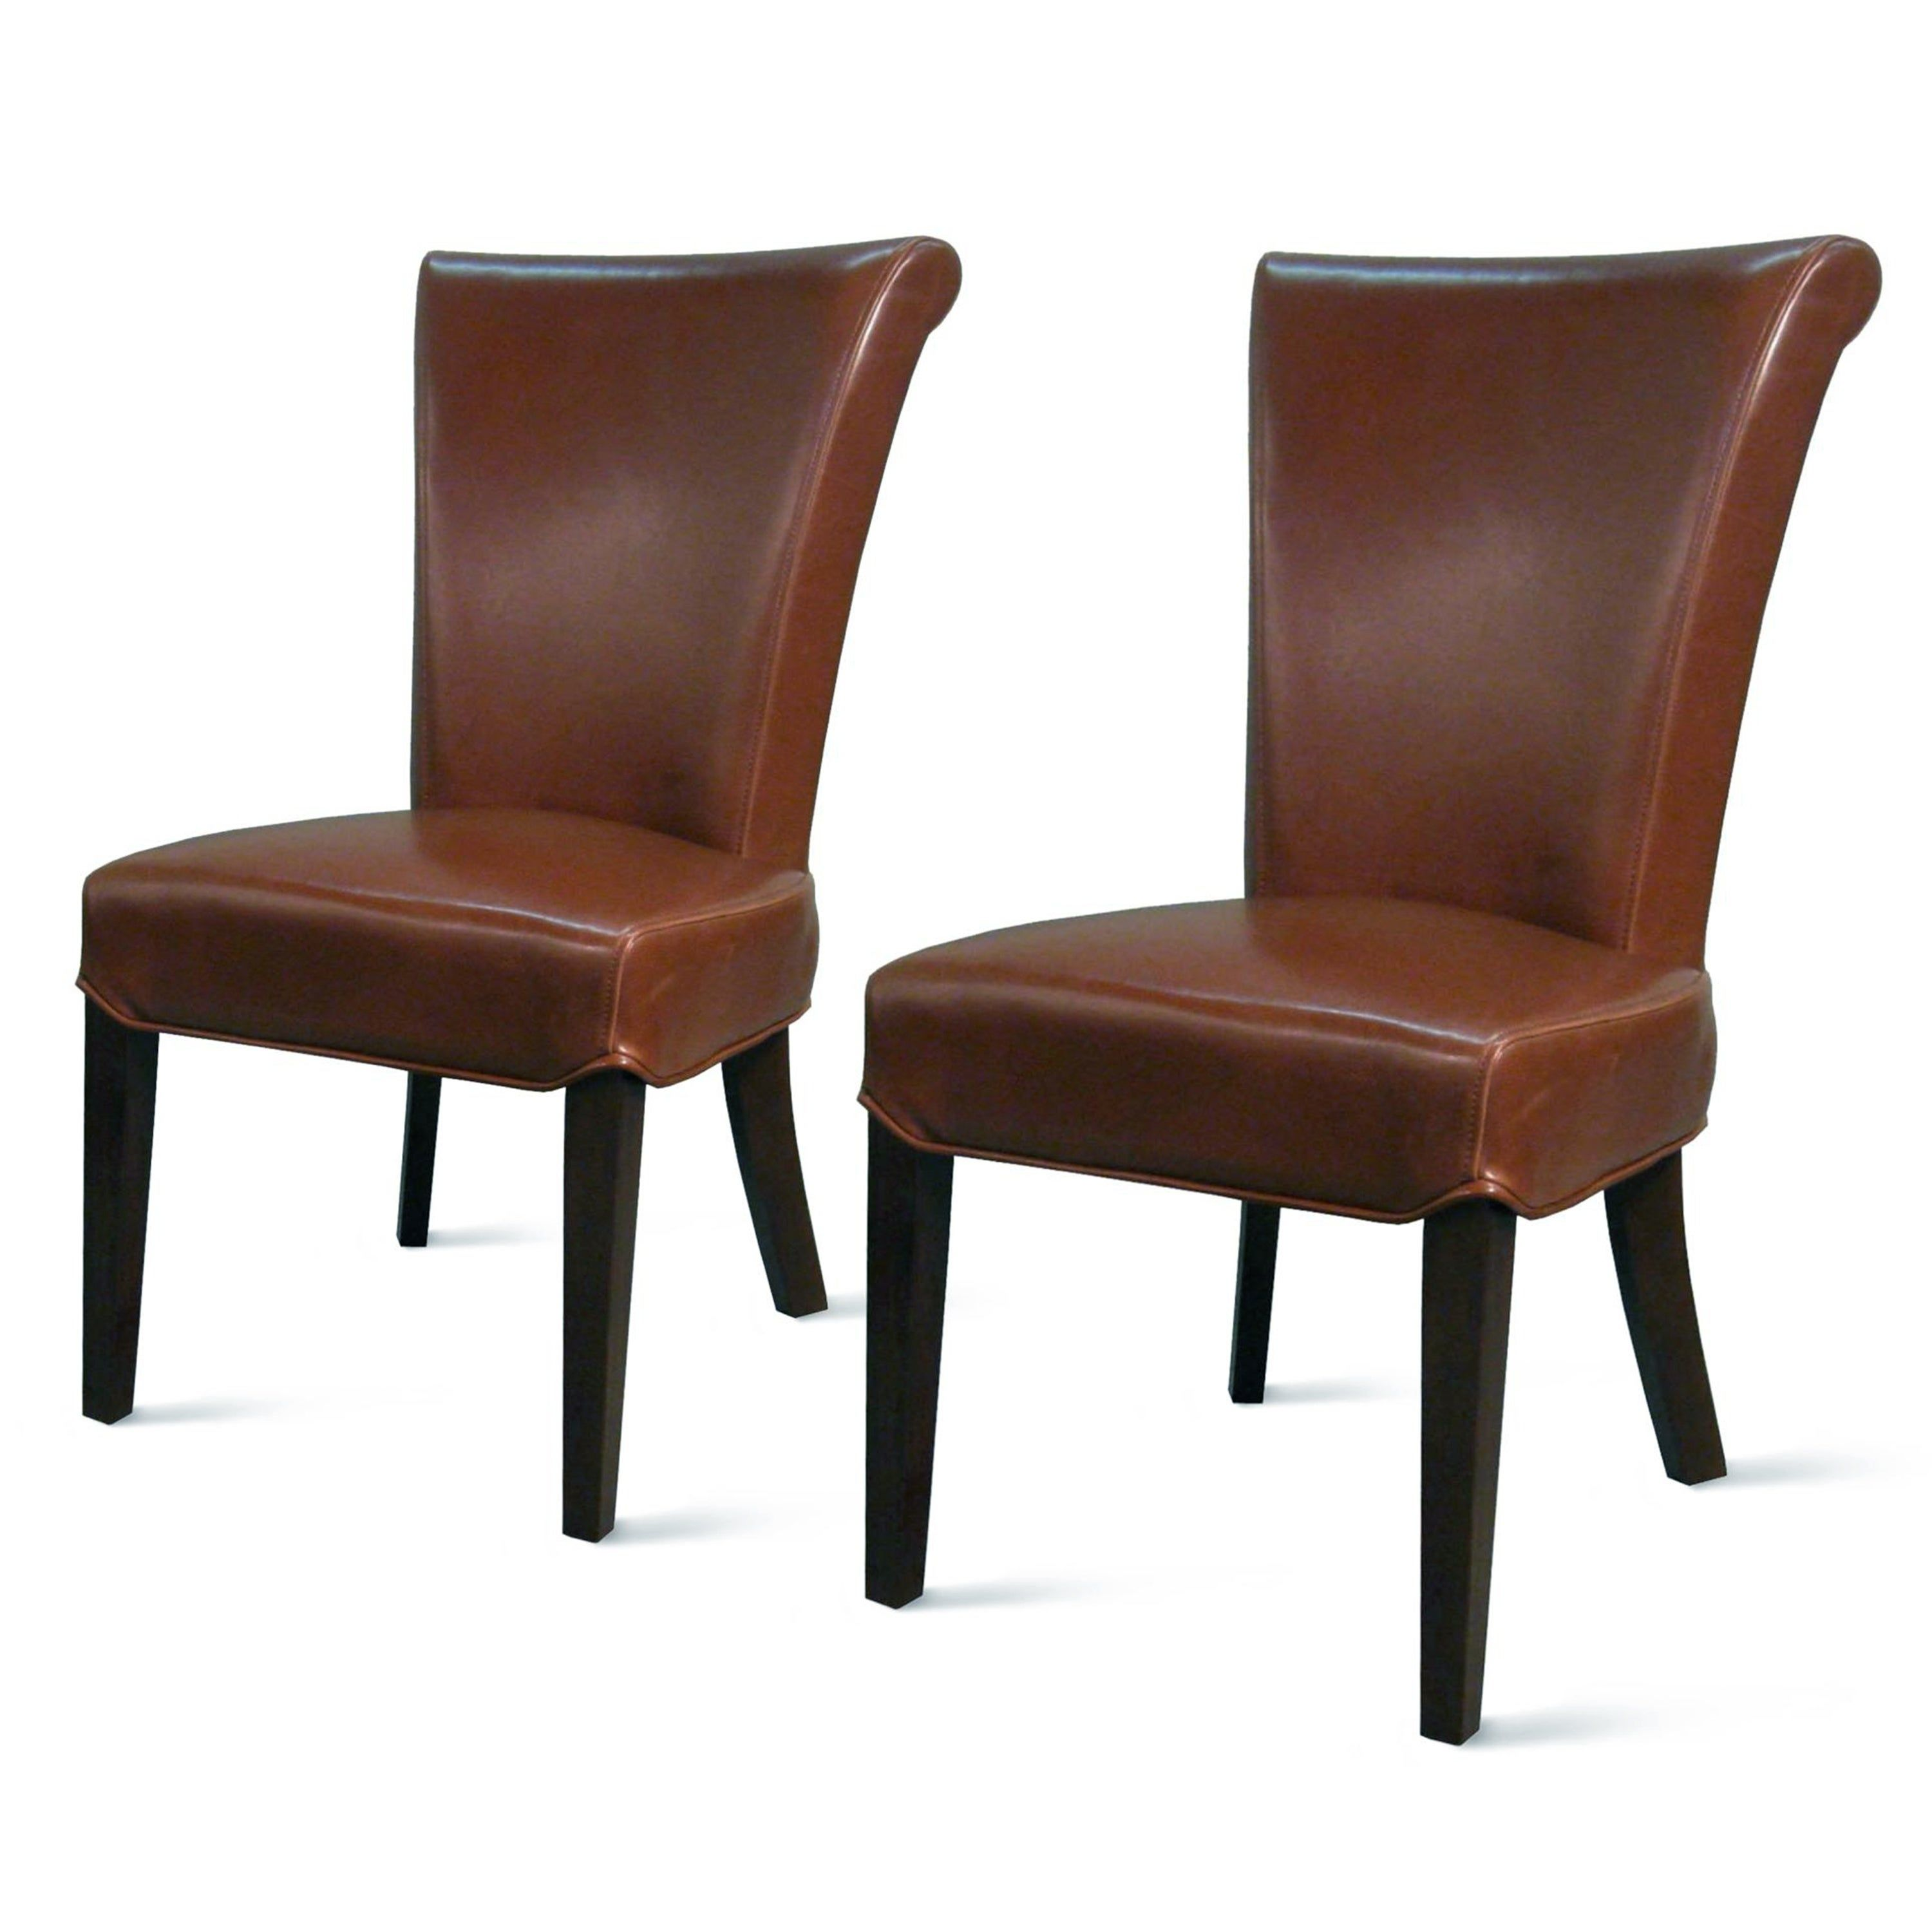 leather parsons chair on Bentley Bonded Leather Chair Set Of 2 Na In 2021 Dining Chairs Leather Dining Chairs Dining Chair Set